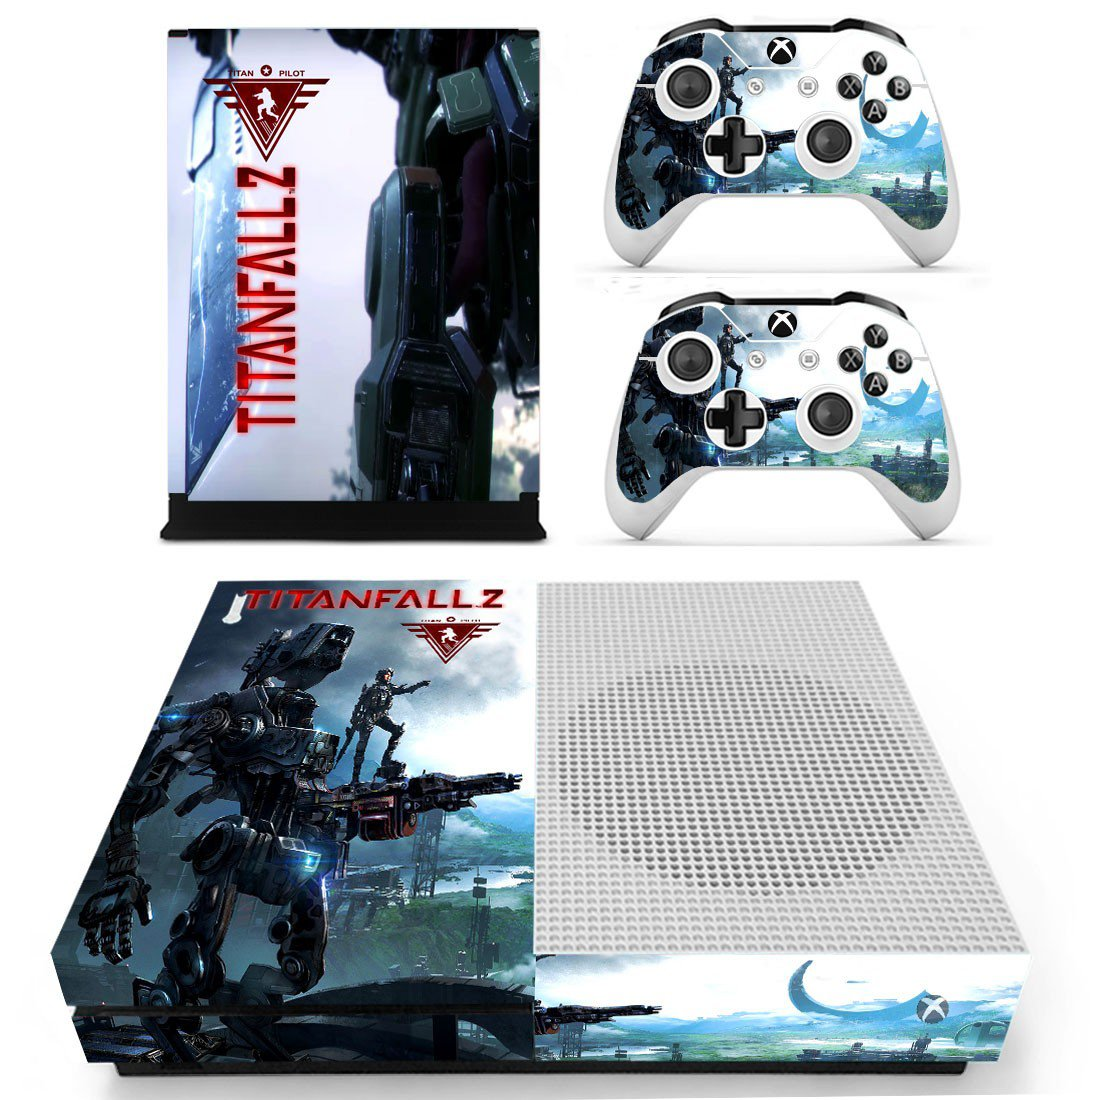 Titanfall2 skin decal for Xbox one S console and controllers